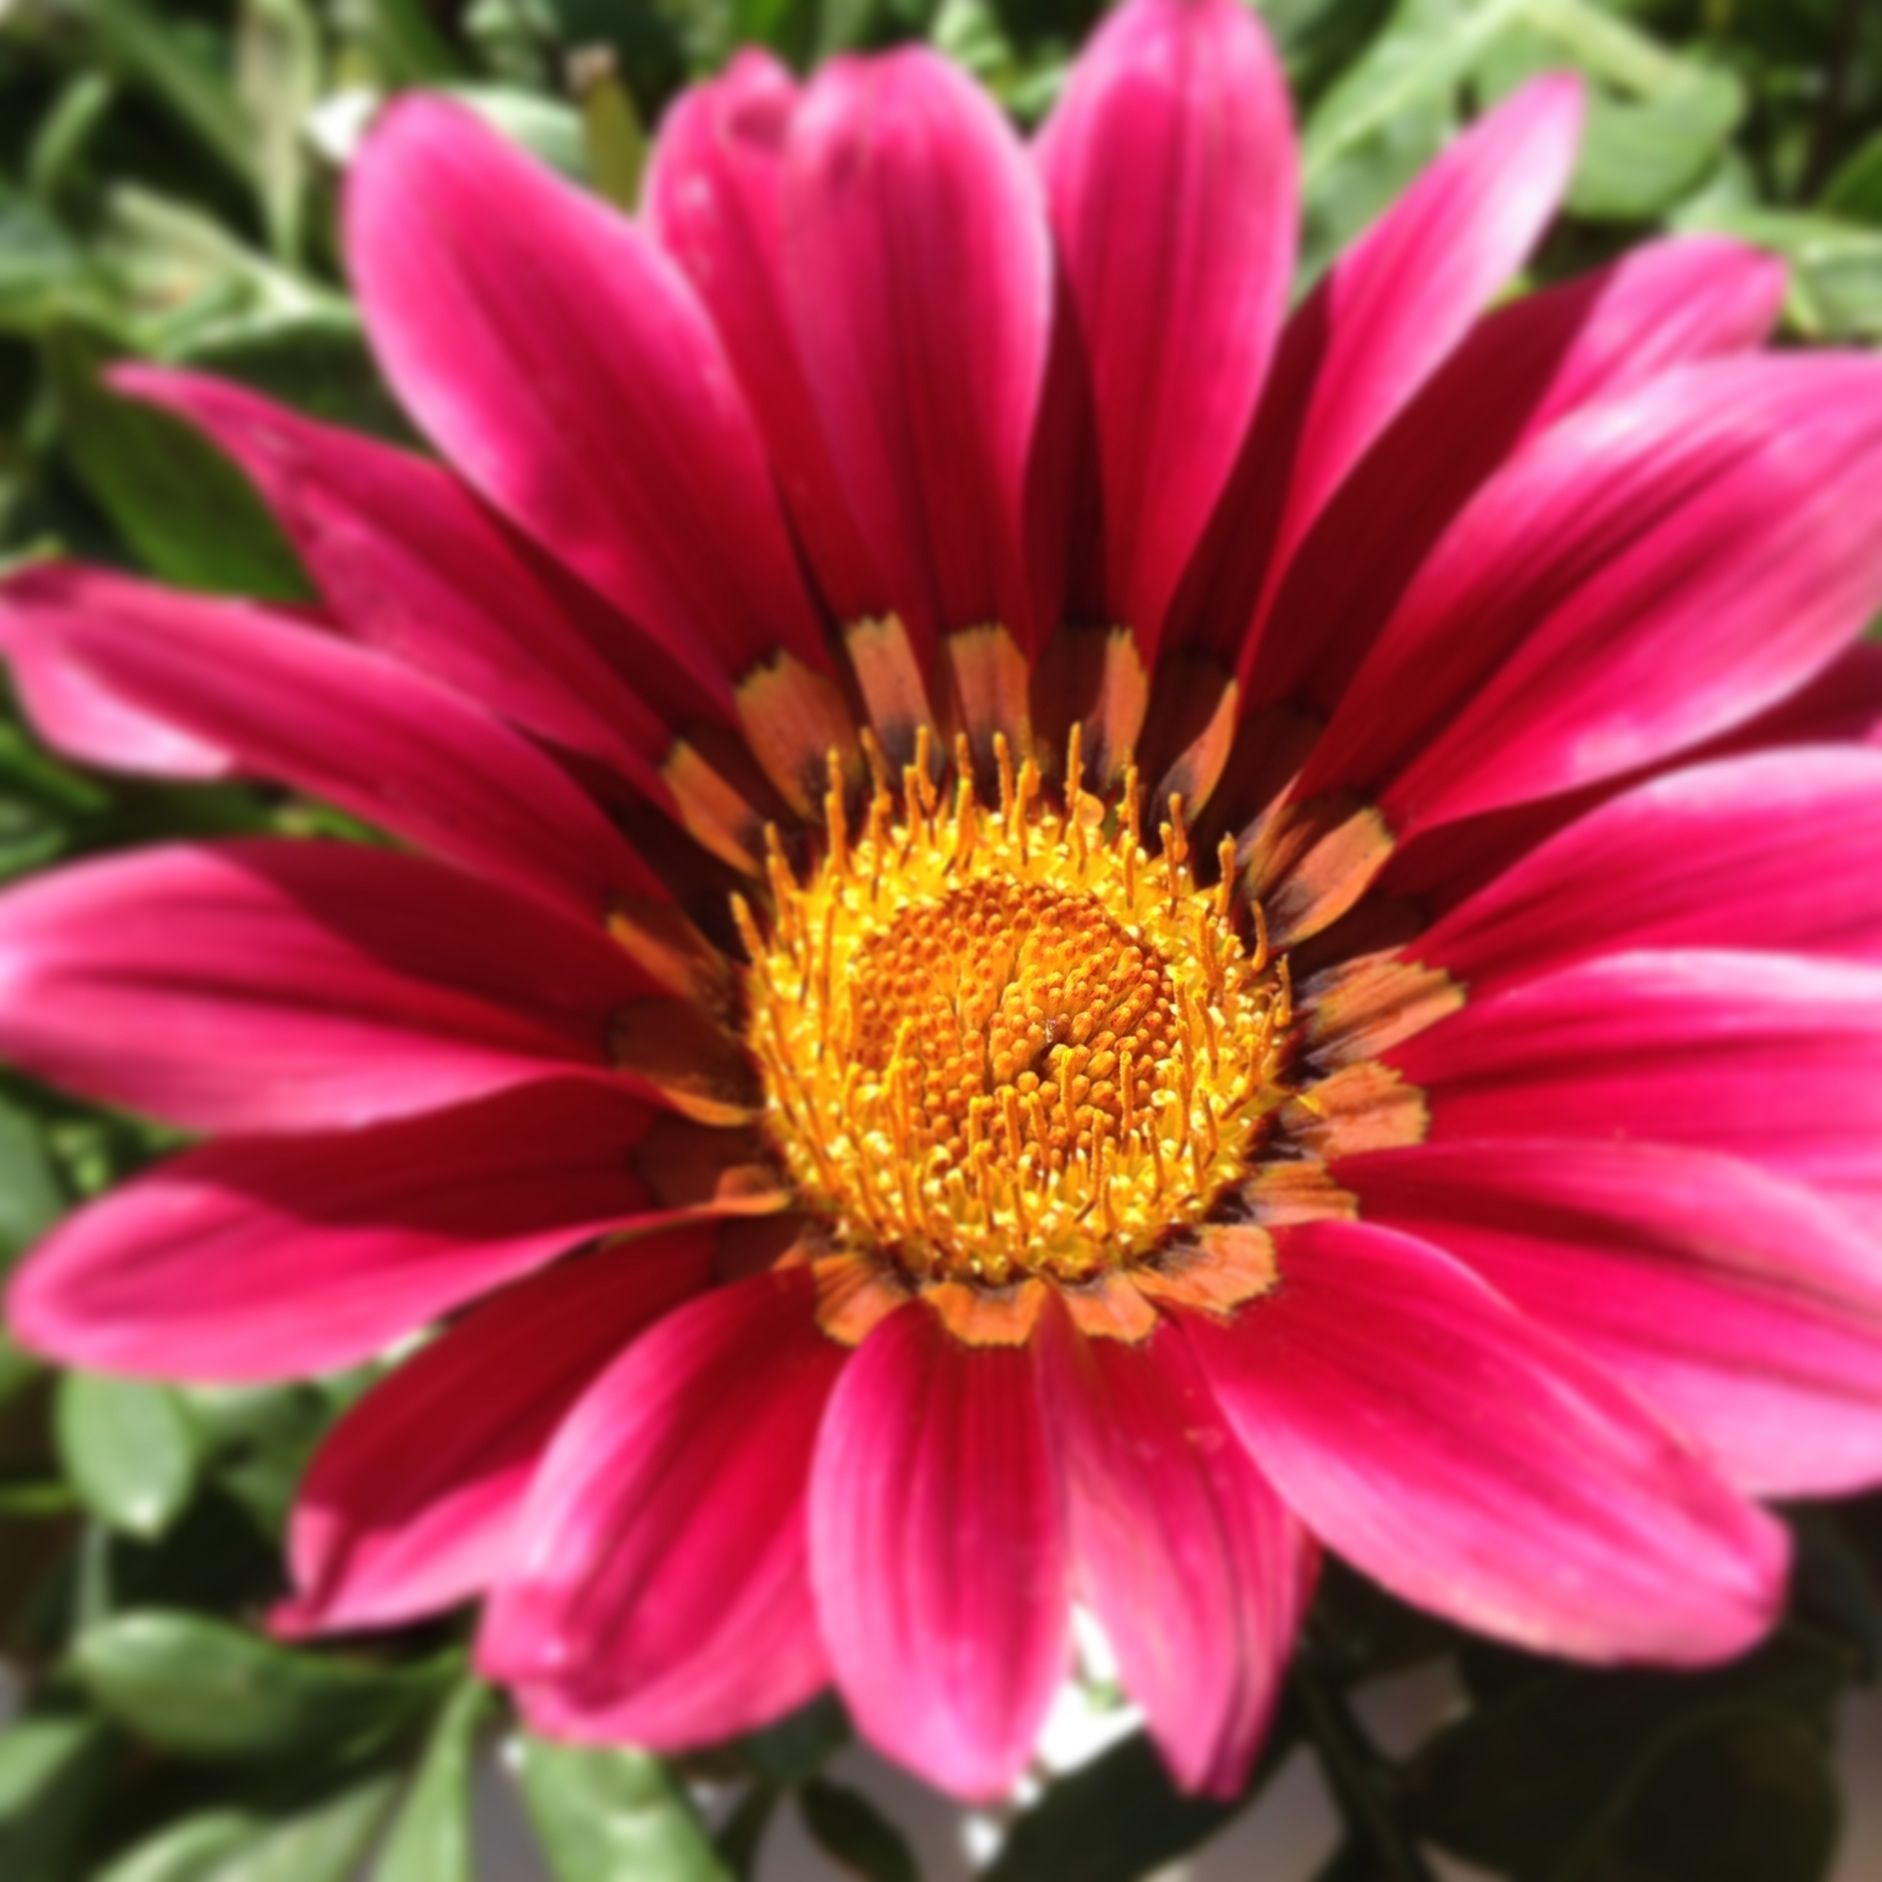 Gazania bloom in my garden pink pinterest gardens plants and pink kiss produces large two toned pink daisy like flowers on dense low growing foliage this perennial hybrid is a hardy free flowering variety izmirmasajfo